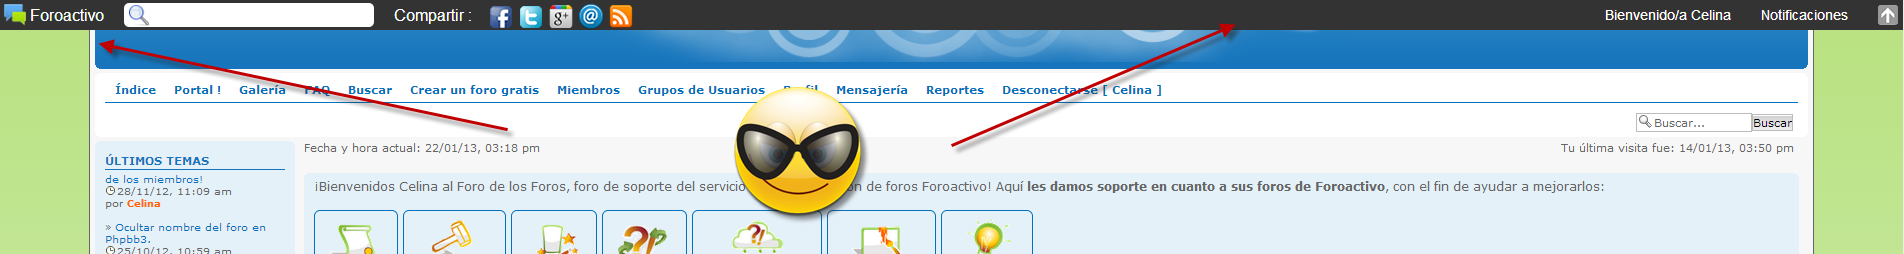 Toolbar y notificaciones : ¿Como funcionan? 40010